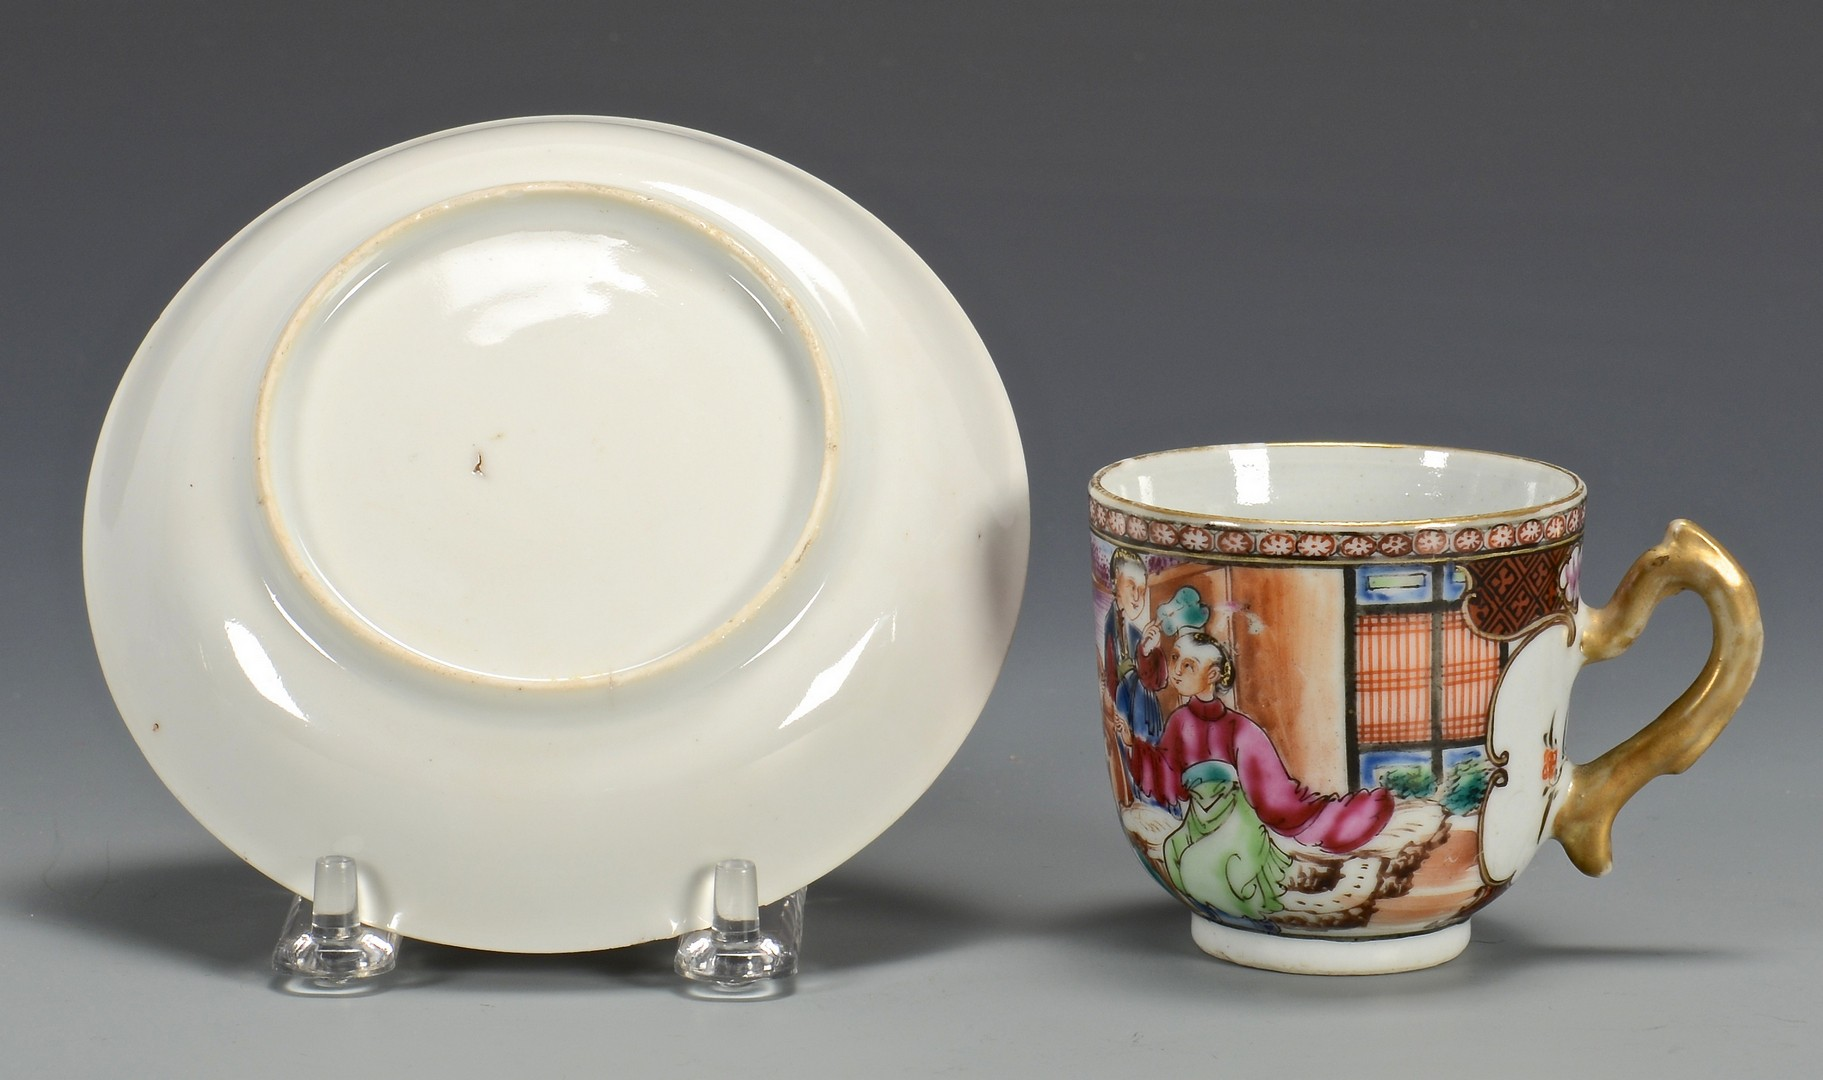 Lot 352: Grouping of Chinese Export Porcelain, 5 pcs.